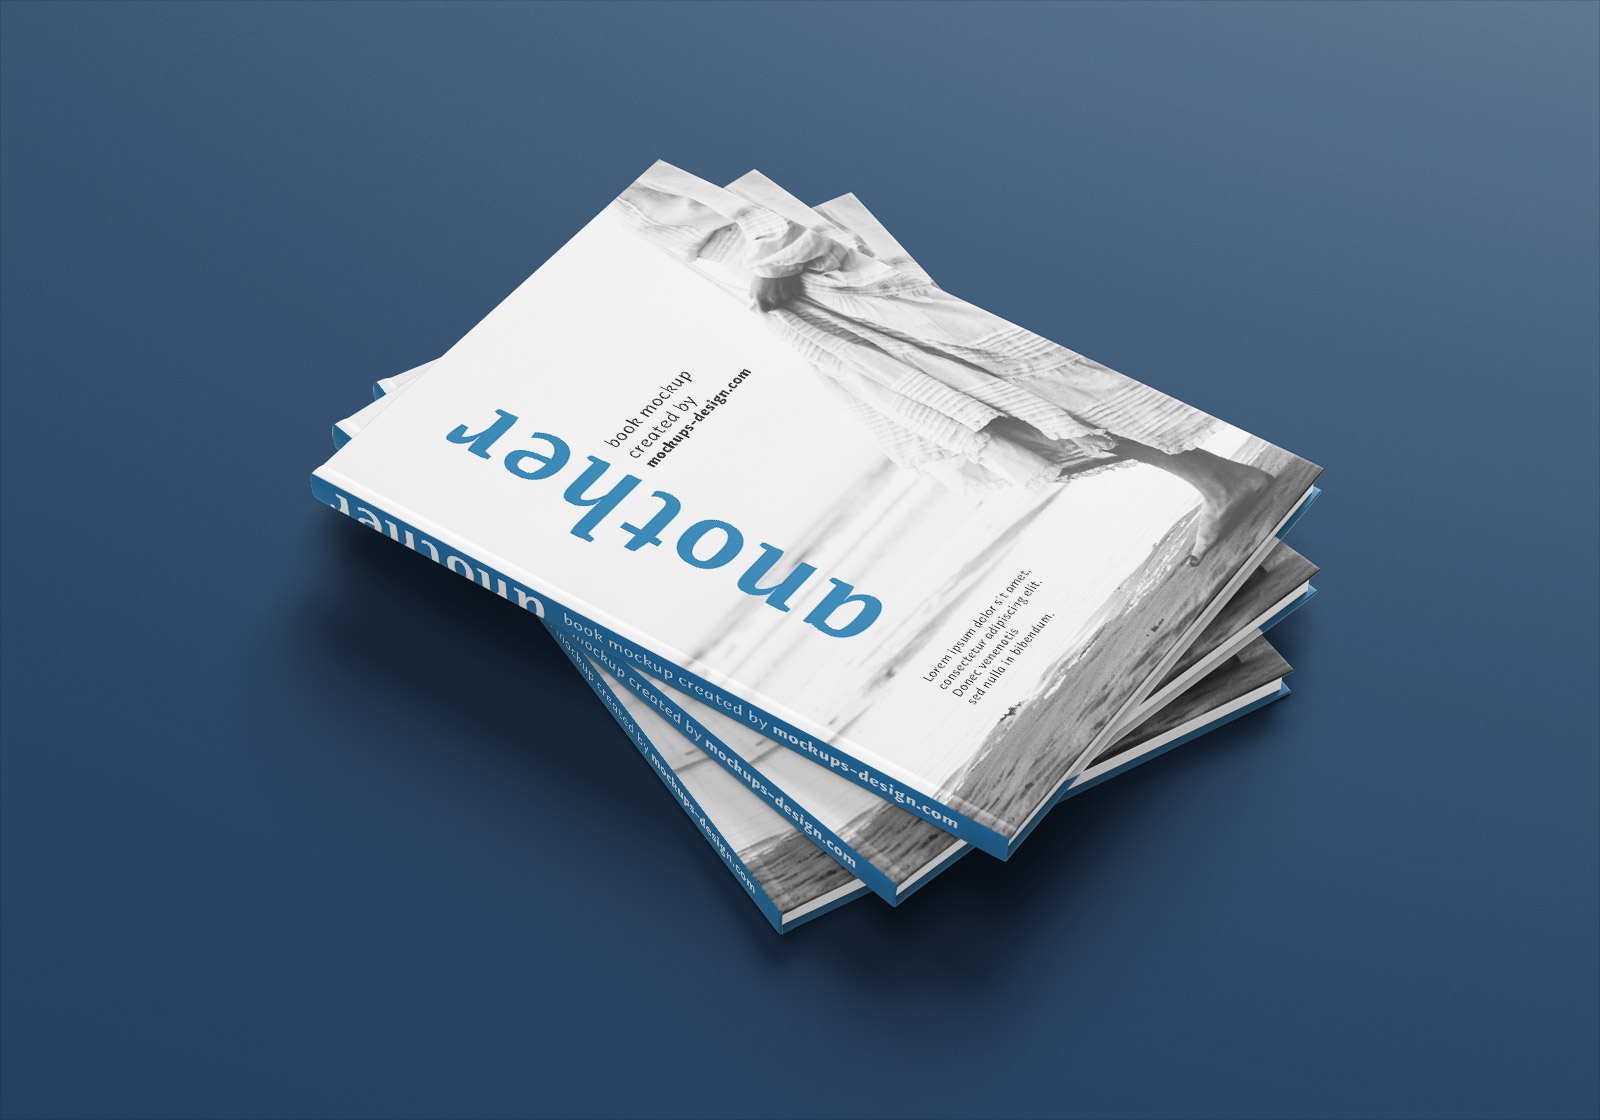 Free A4 Hardcover Magazine Book Mockup PSD Set (2)